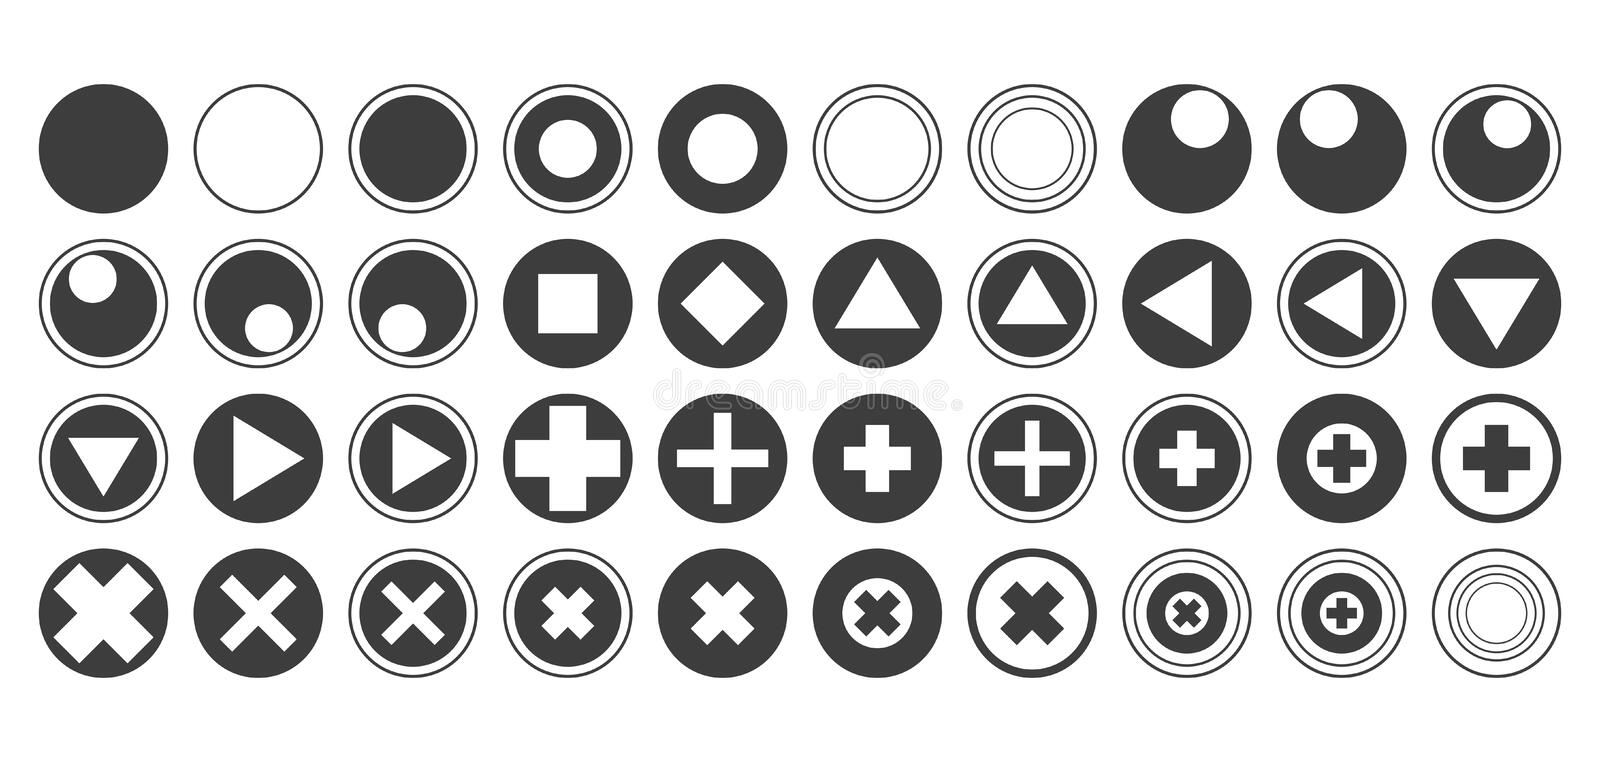 Round vector buttons with triangle icons diamonds squares circles crosses flat black contours set of forty isolated on white backg vector illustration